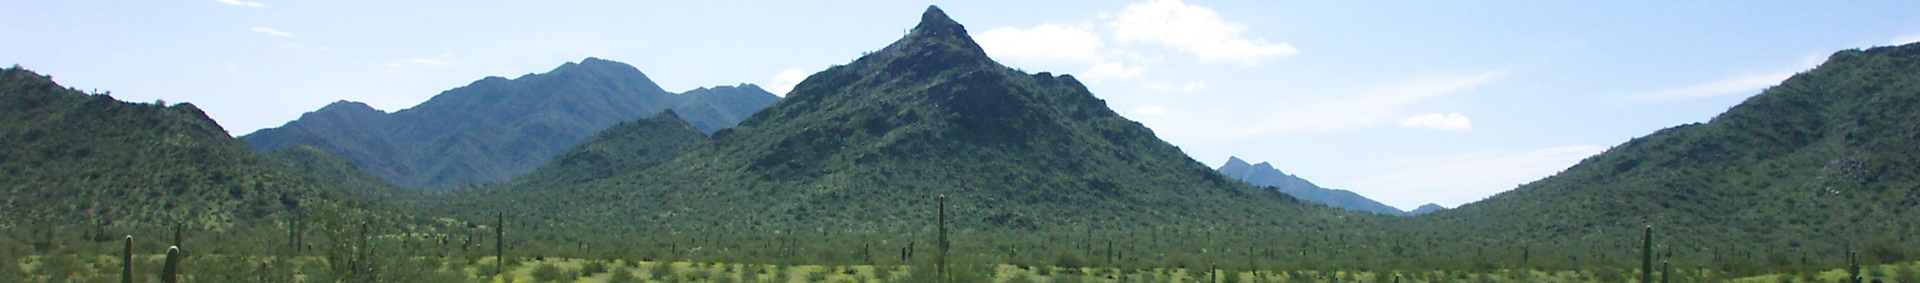 Maricopa County Parks Recreation Maricopa County Parks - What mountains are near me